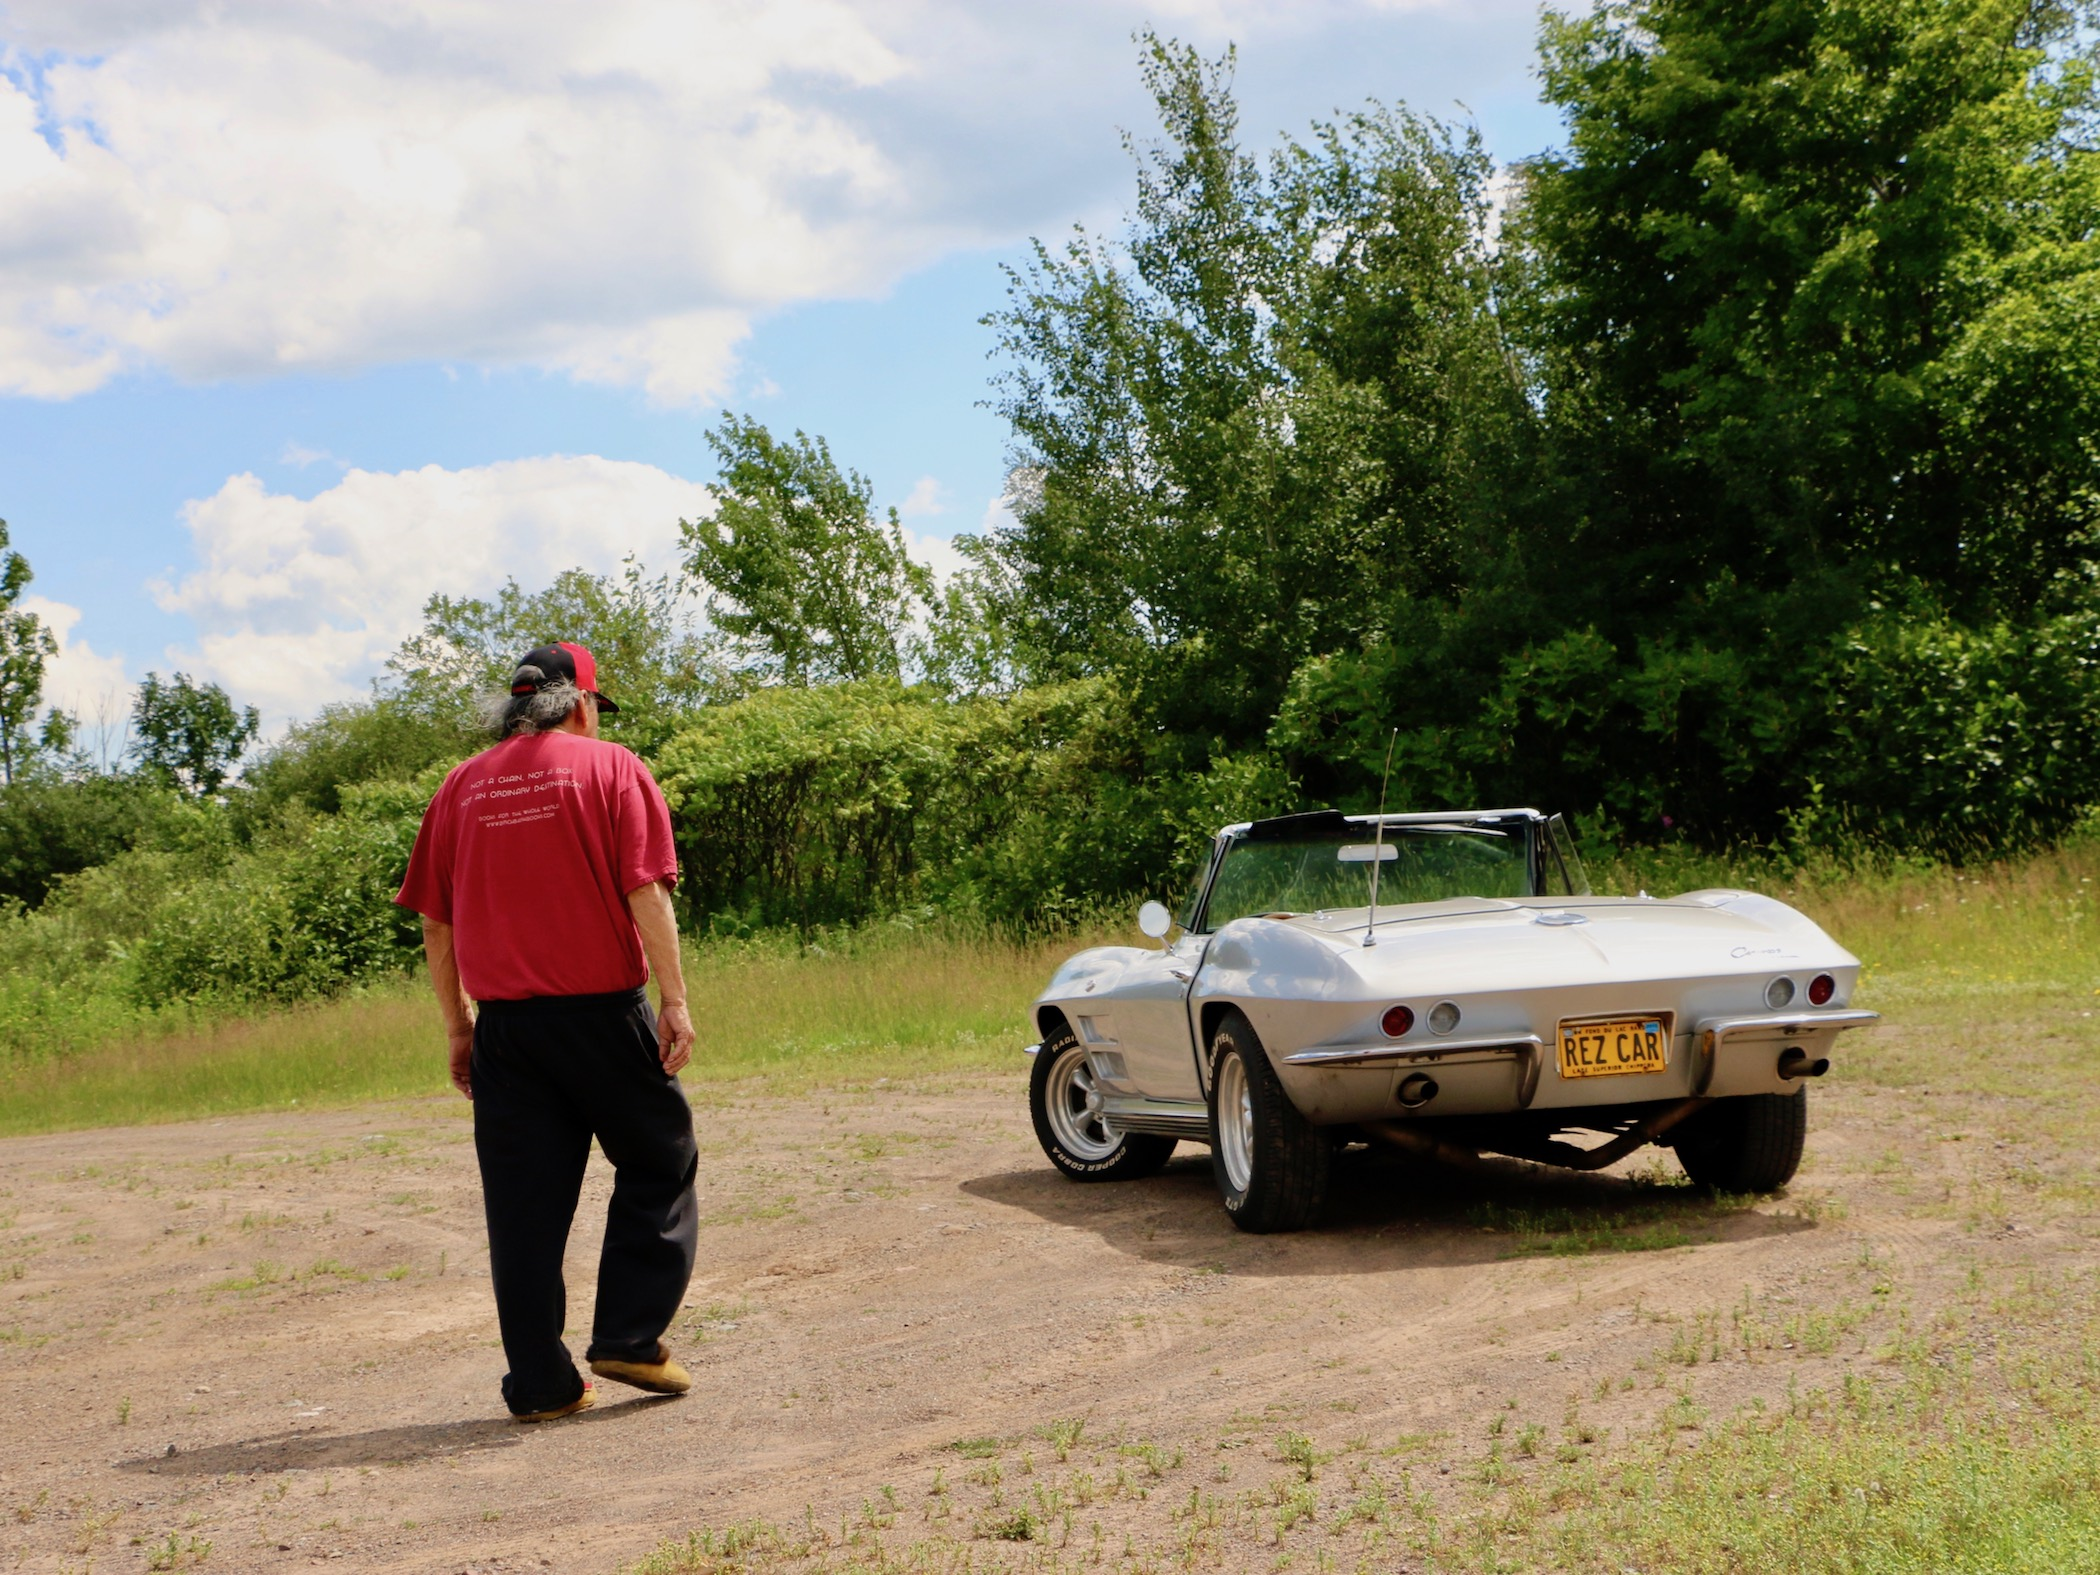 Arne Vainio: Taking Jim Northrup's rez car out for another journey